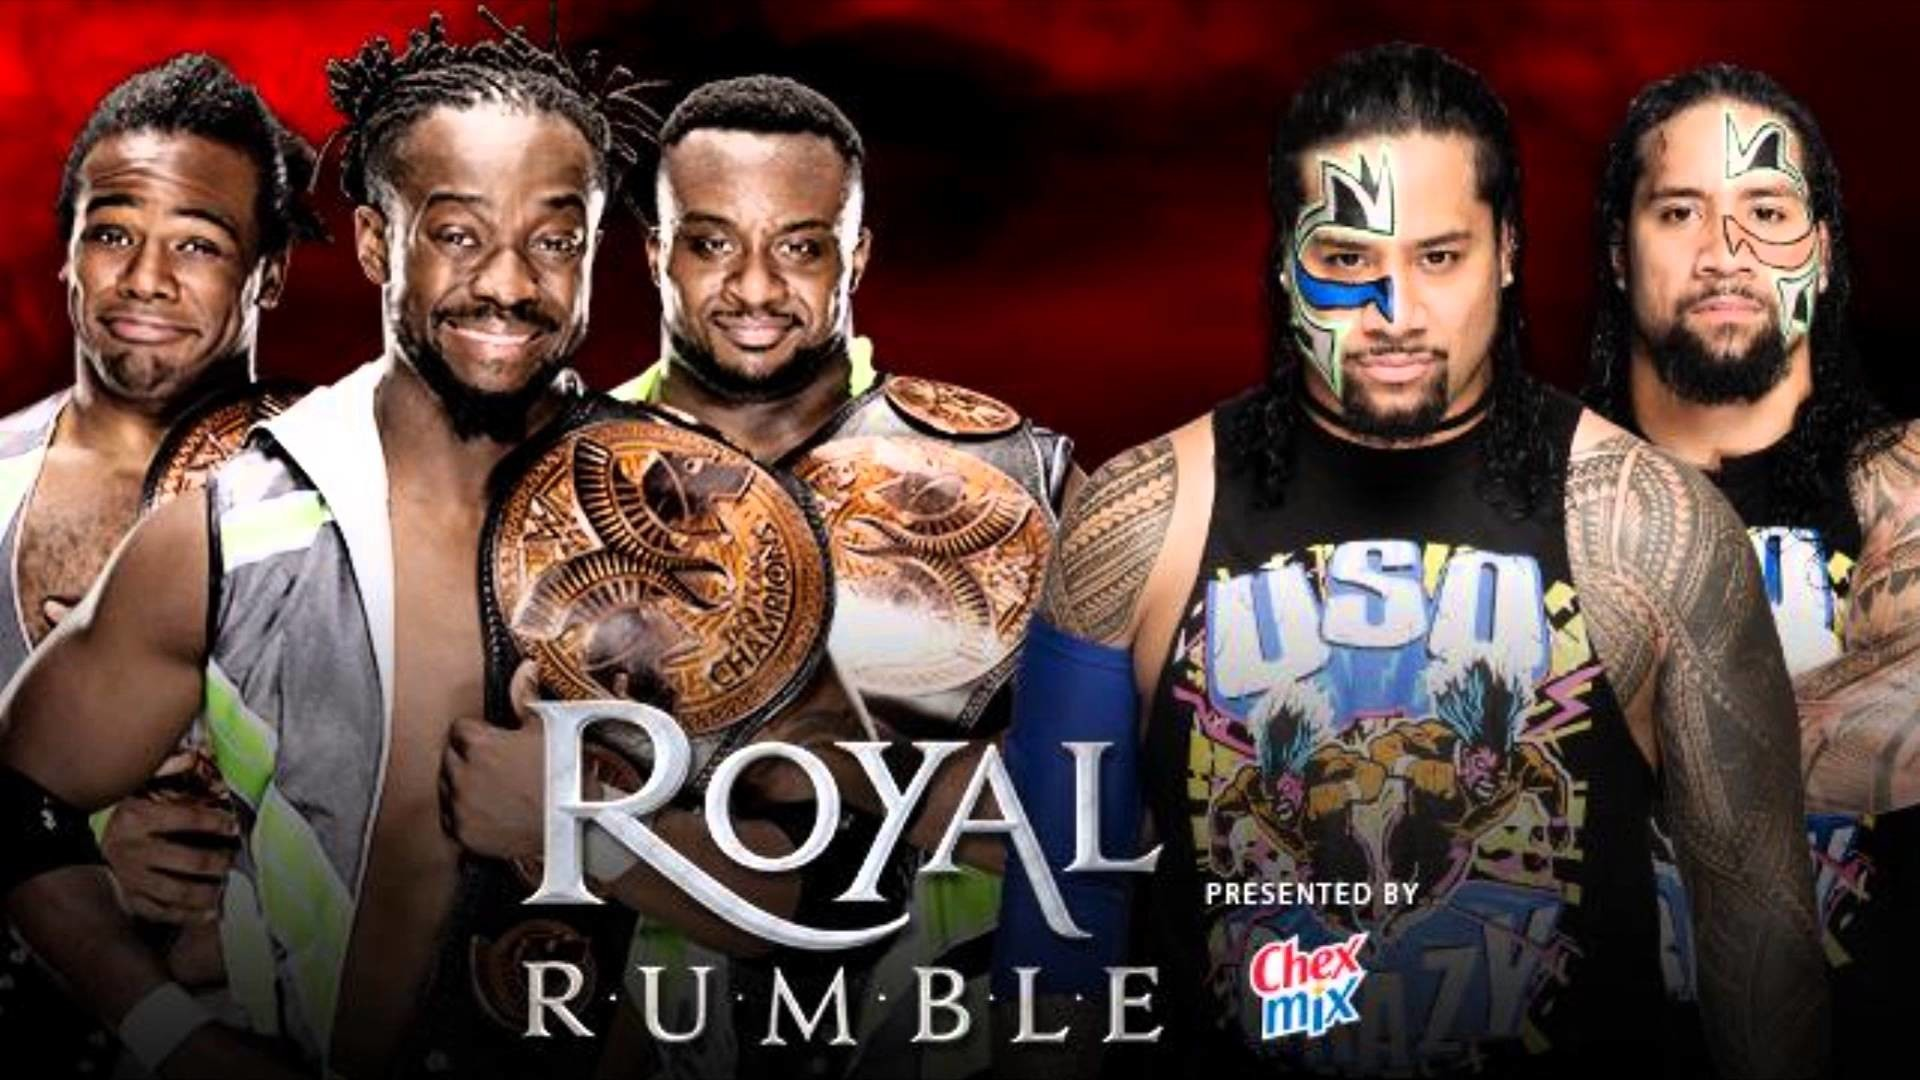 WWE Royal Rumble 2016 The Usos vs The New Day for the Tag team titles